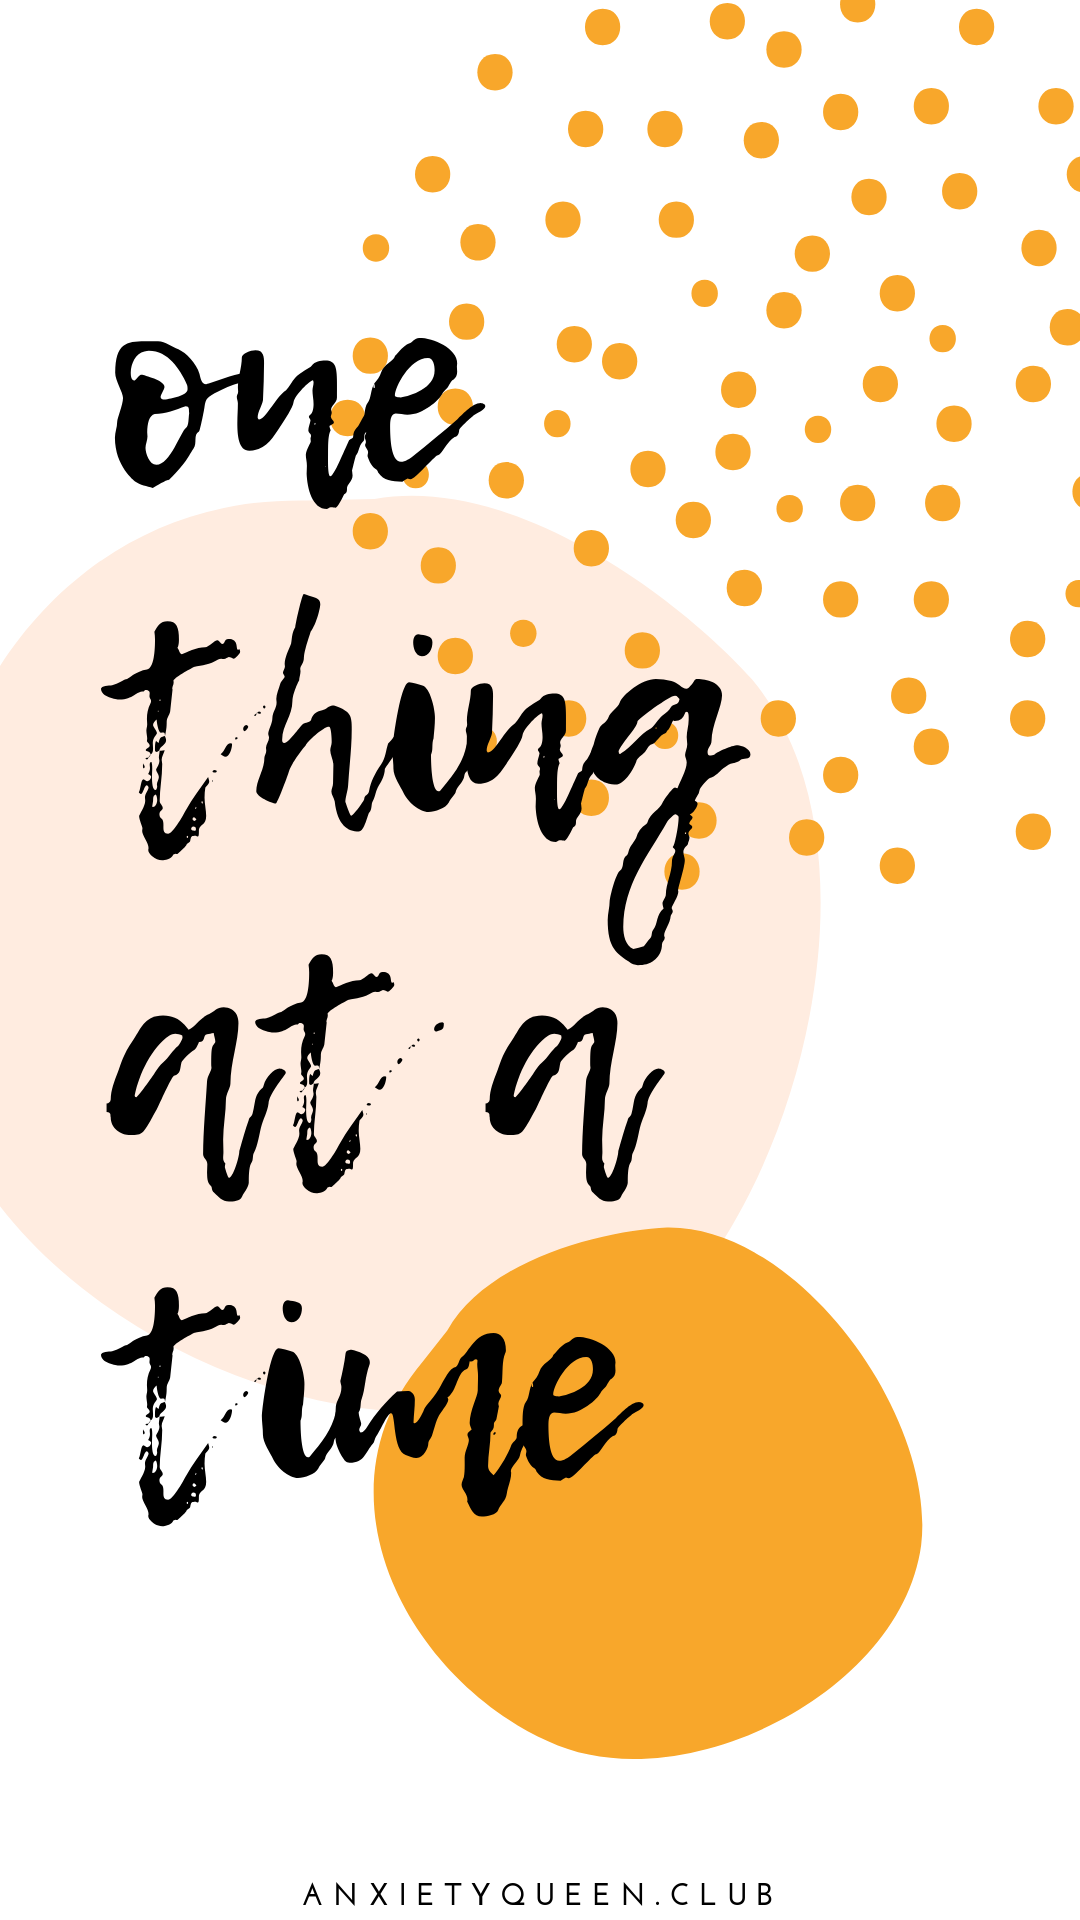 10 Autumn Inspired Motivational Quotes Phone Wallpapers  10 Autumn Inspired Motivational Quotes Phone Wallpapers #phonewallpaperquotes